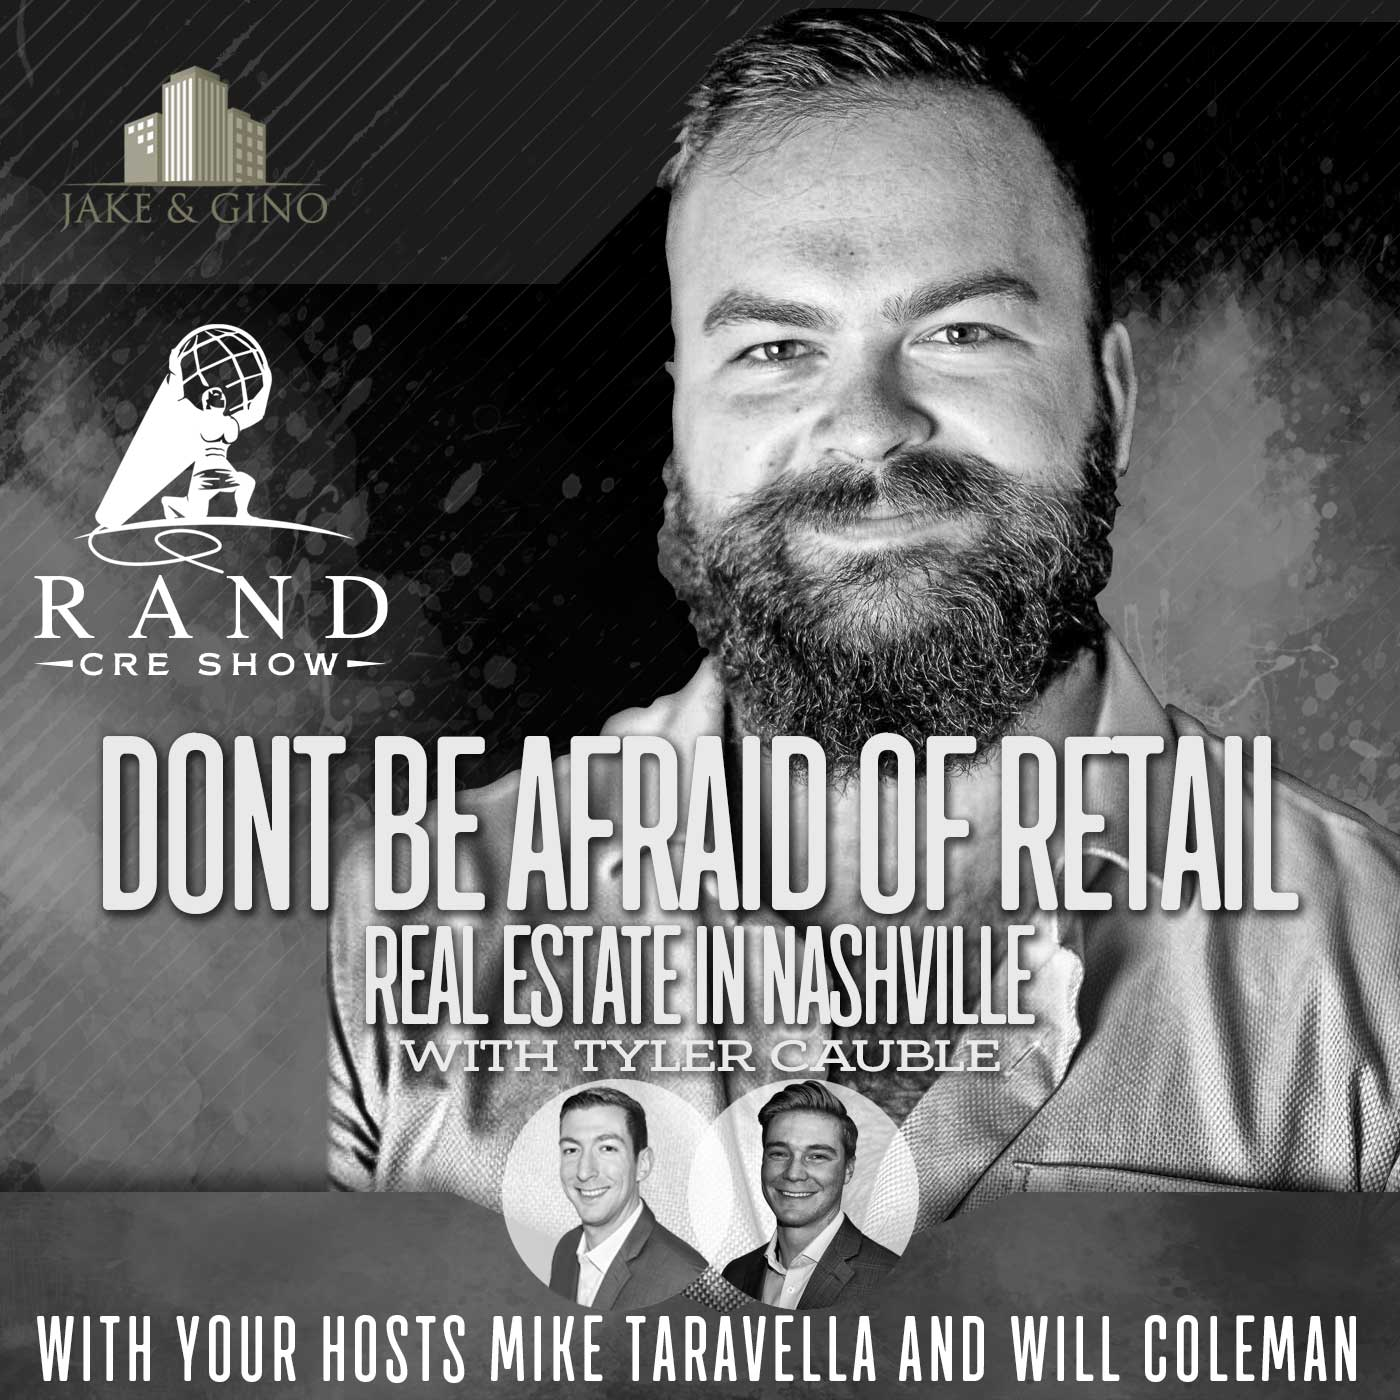 RCRE - Don't Be Afraid of Retail Real Estate in Nashville with Tyler Cauble